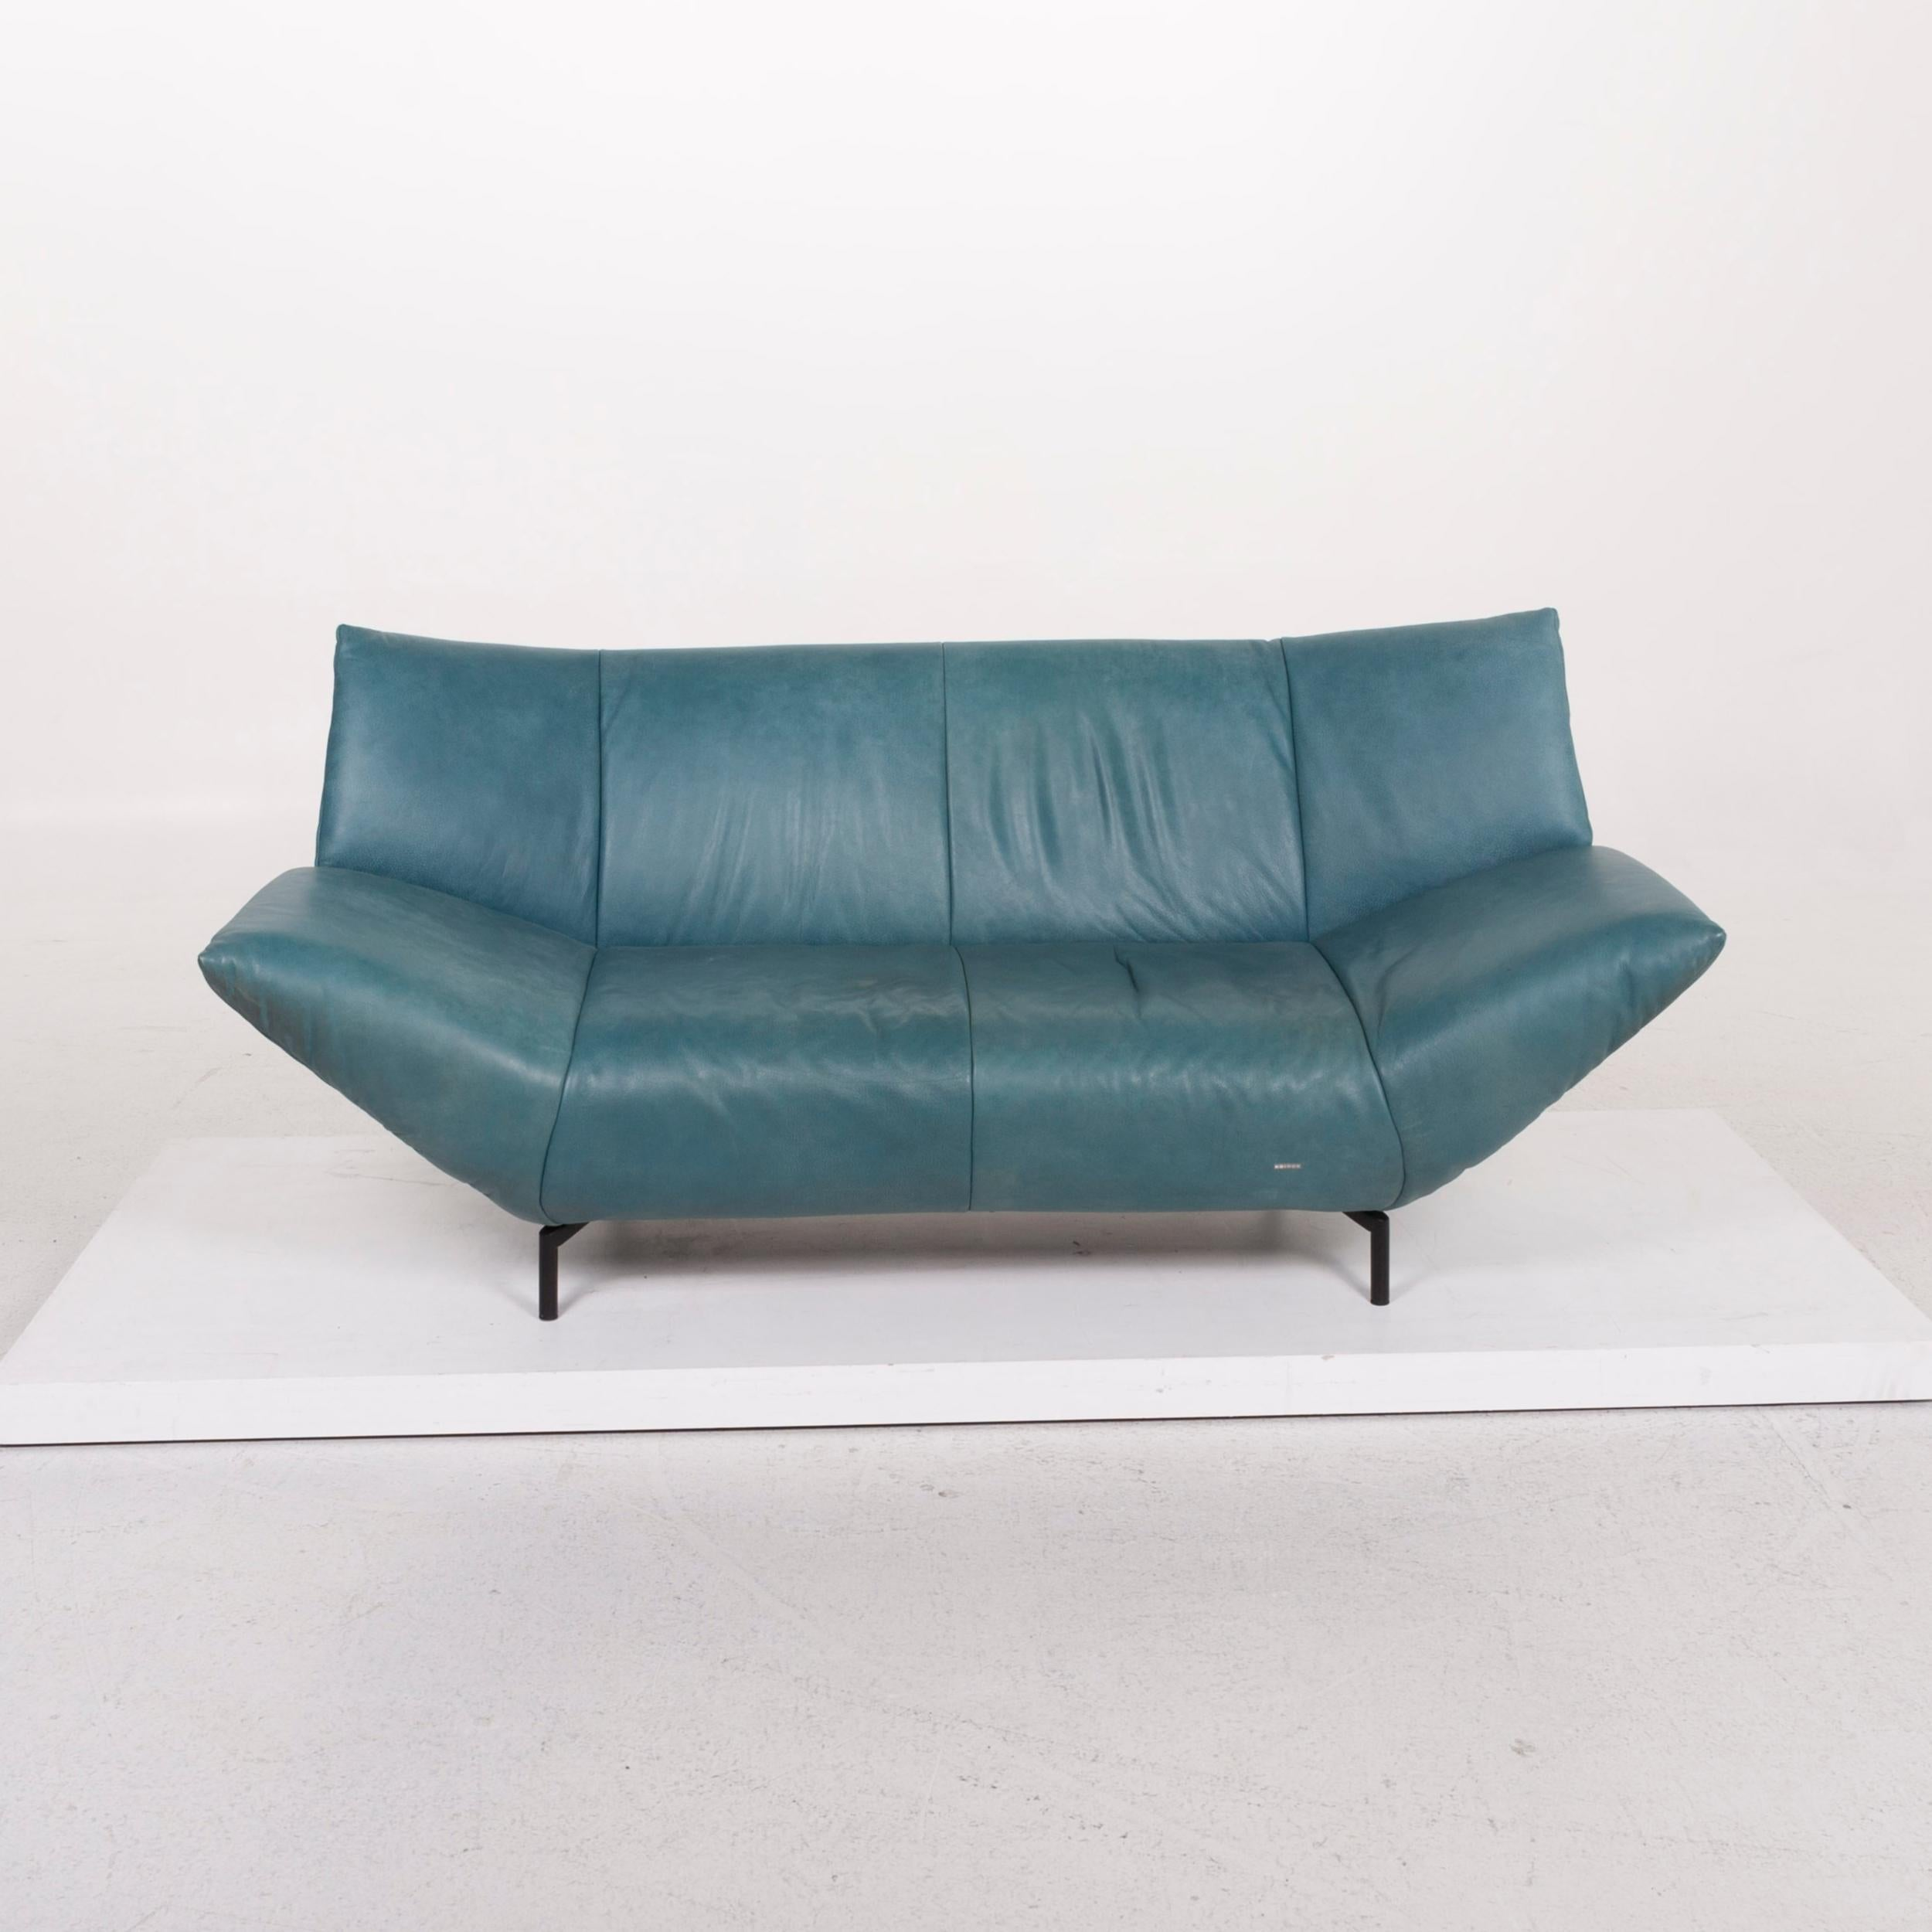 - Koinor Leather Sofa Turquoise Blue Green Two-Seat For Sale At 1stdibs